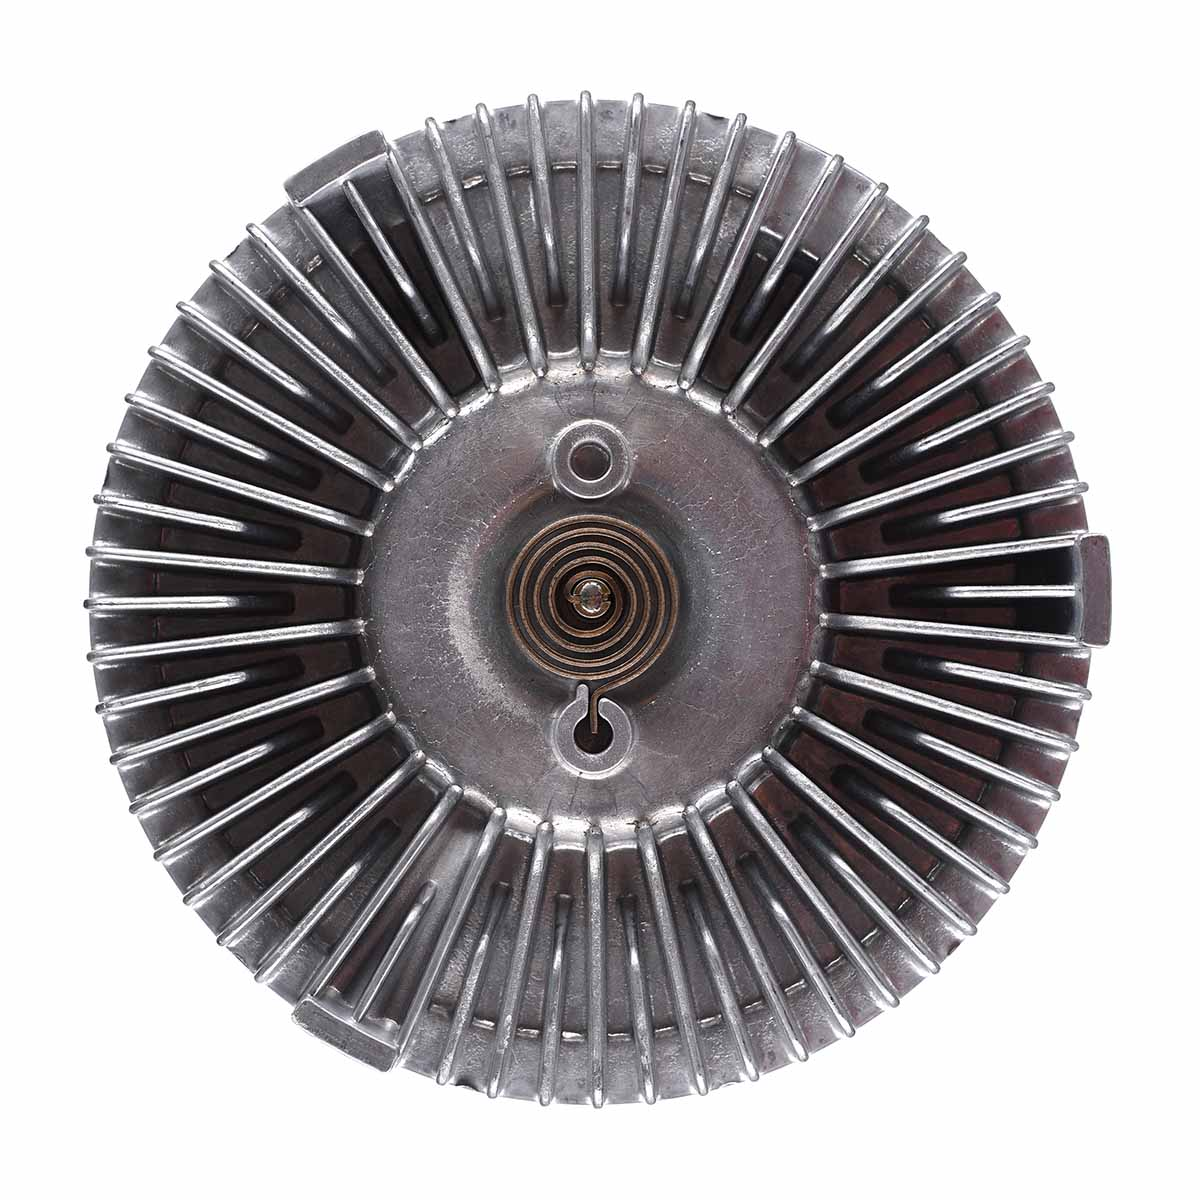 small resolution of cooling fan clutch for cadillac escalade chevrolet gmc yukon savana sierrac k 1500 oldsmobile hummer h2 4 3 4 8l 5 3l 5 7l 6 0l in fans kits from